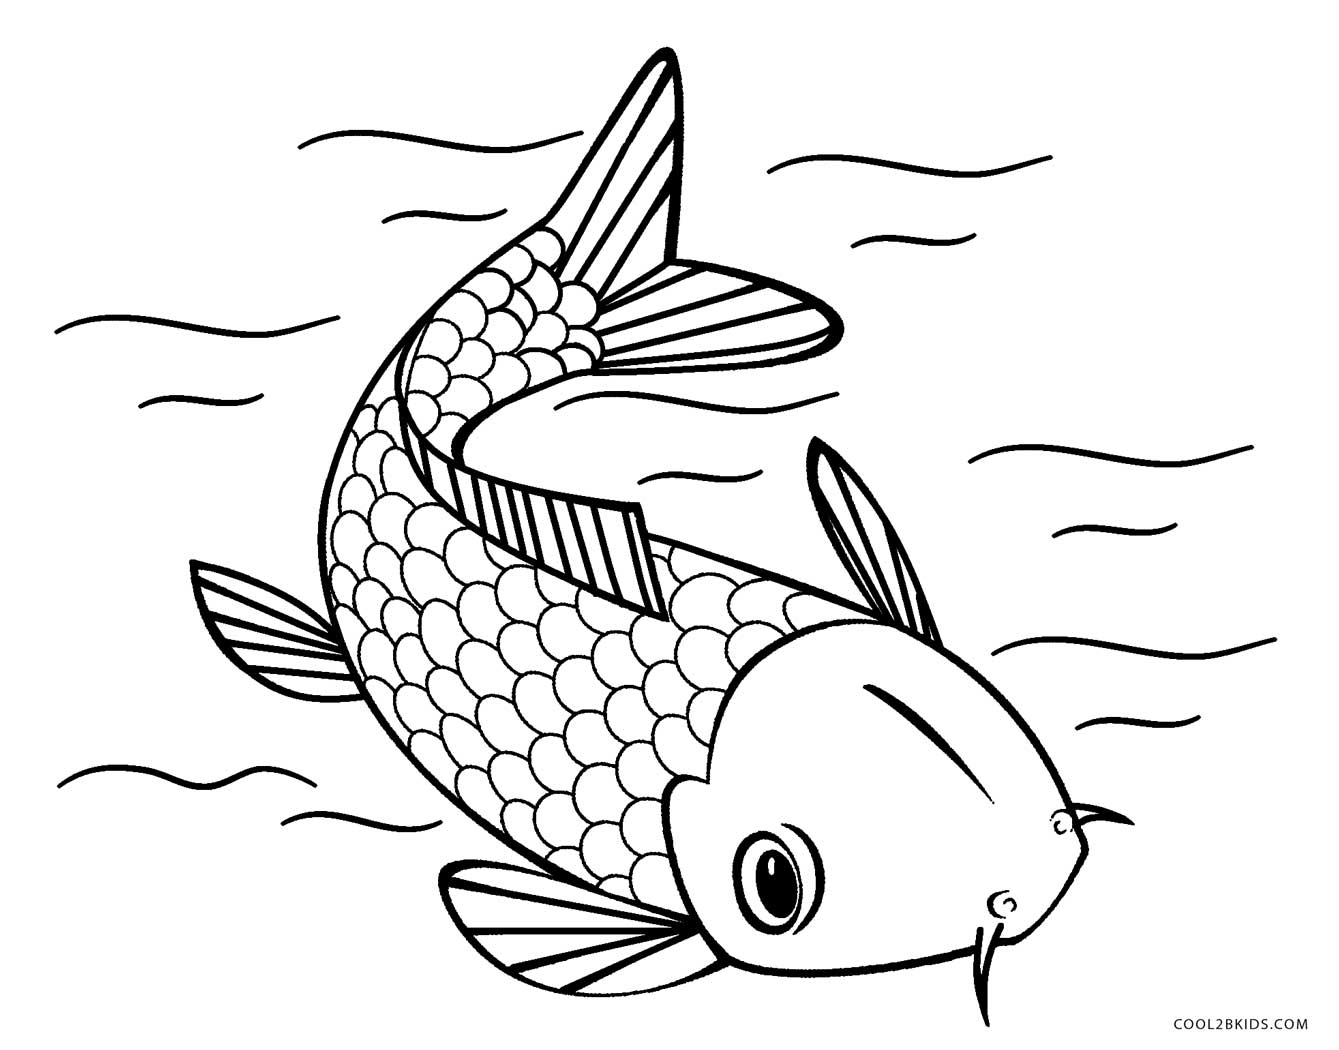 fish coloring pages to print - photo#5